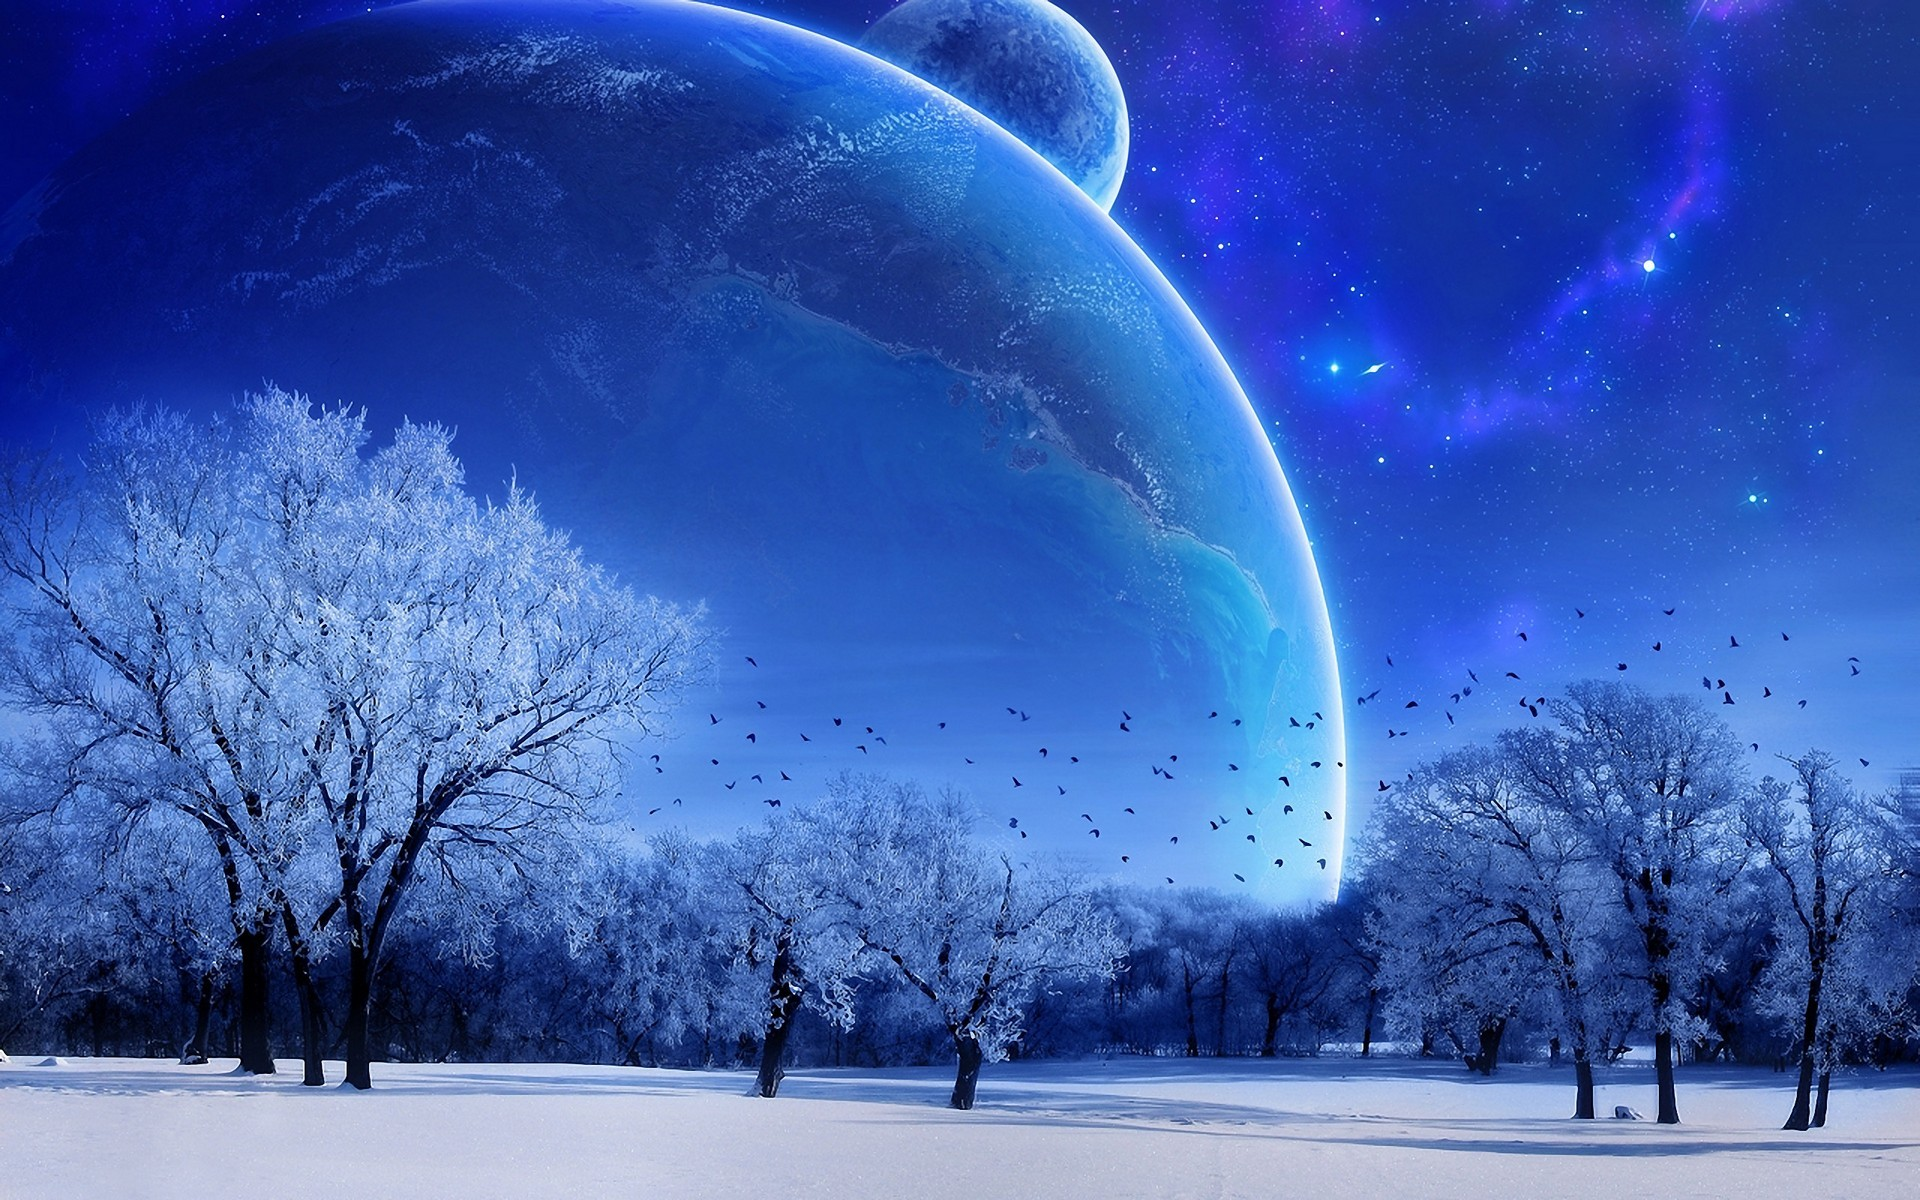 Winter Background HD Wallpapers